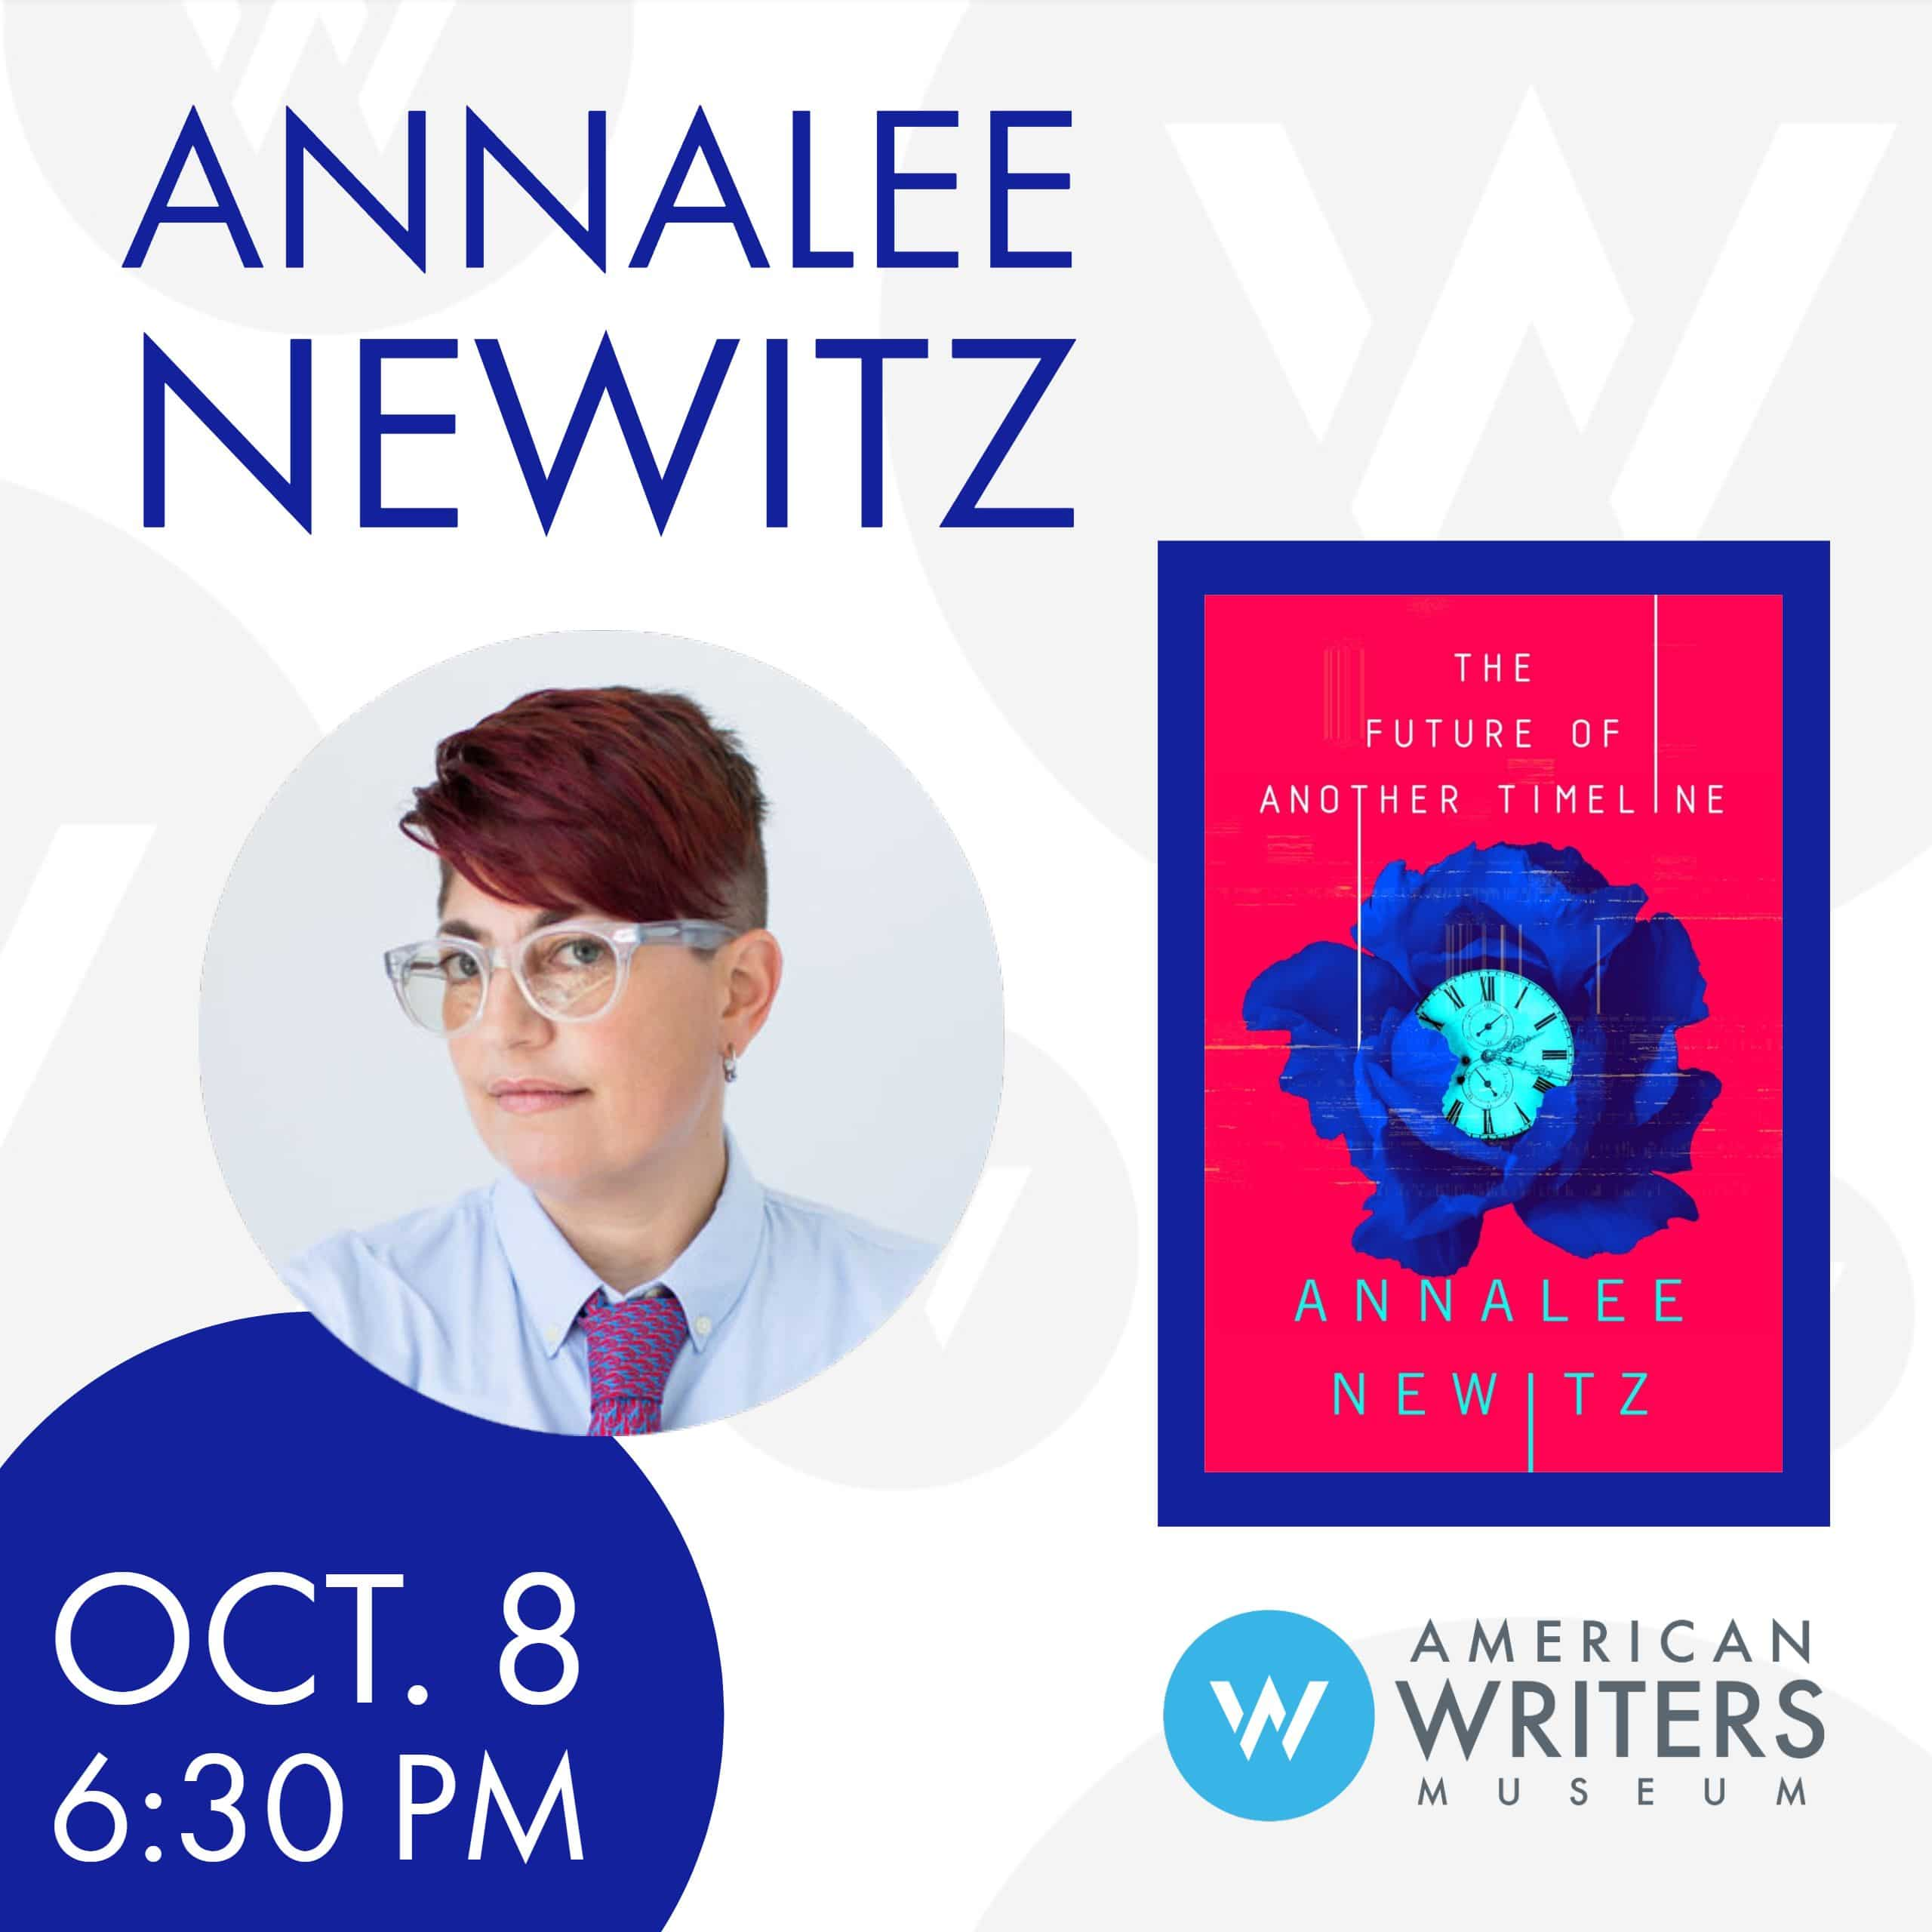 Annalee Newitz at the American Writers Museum on October 8 at 6:30 pm.